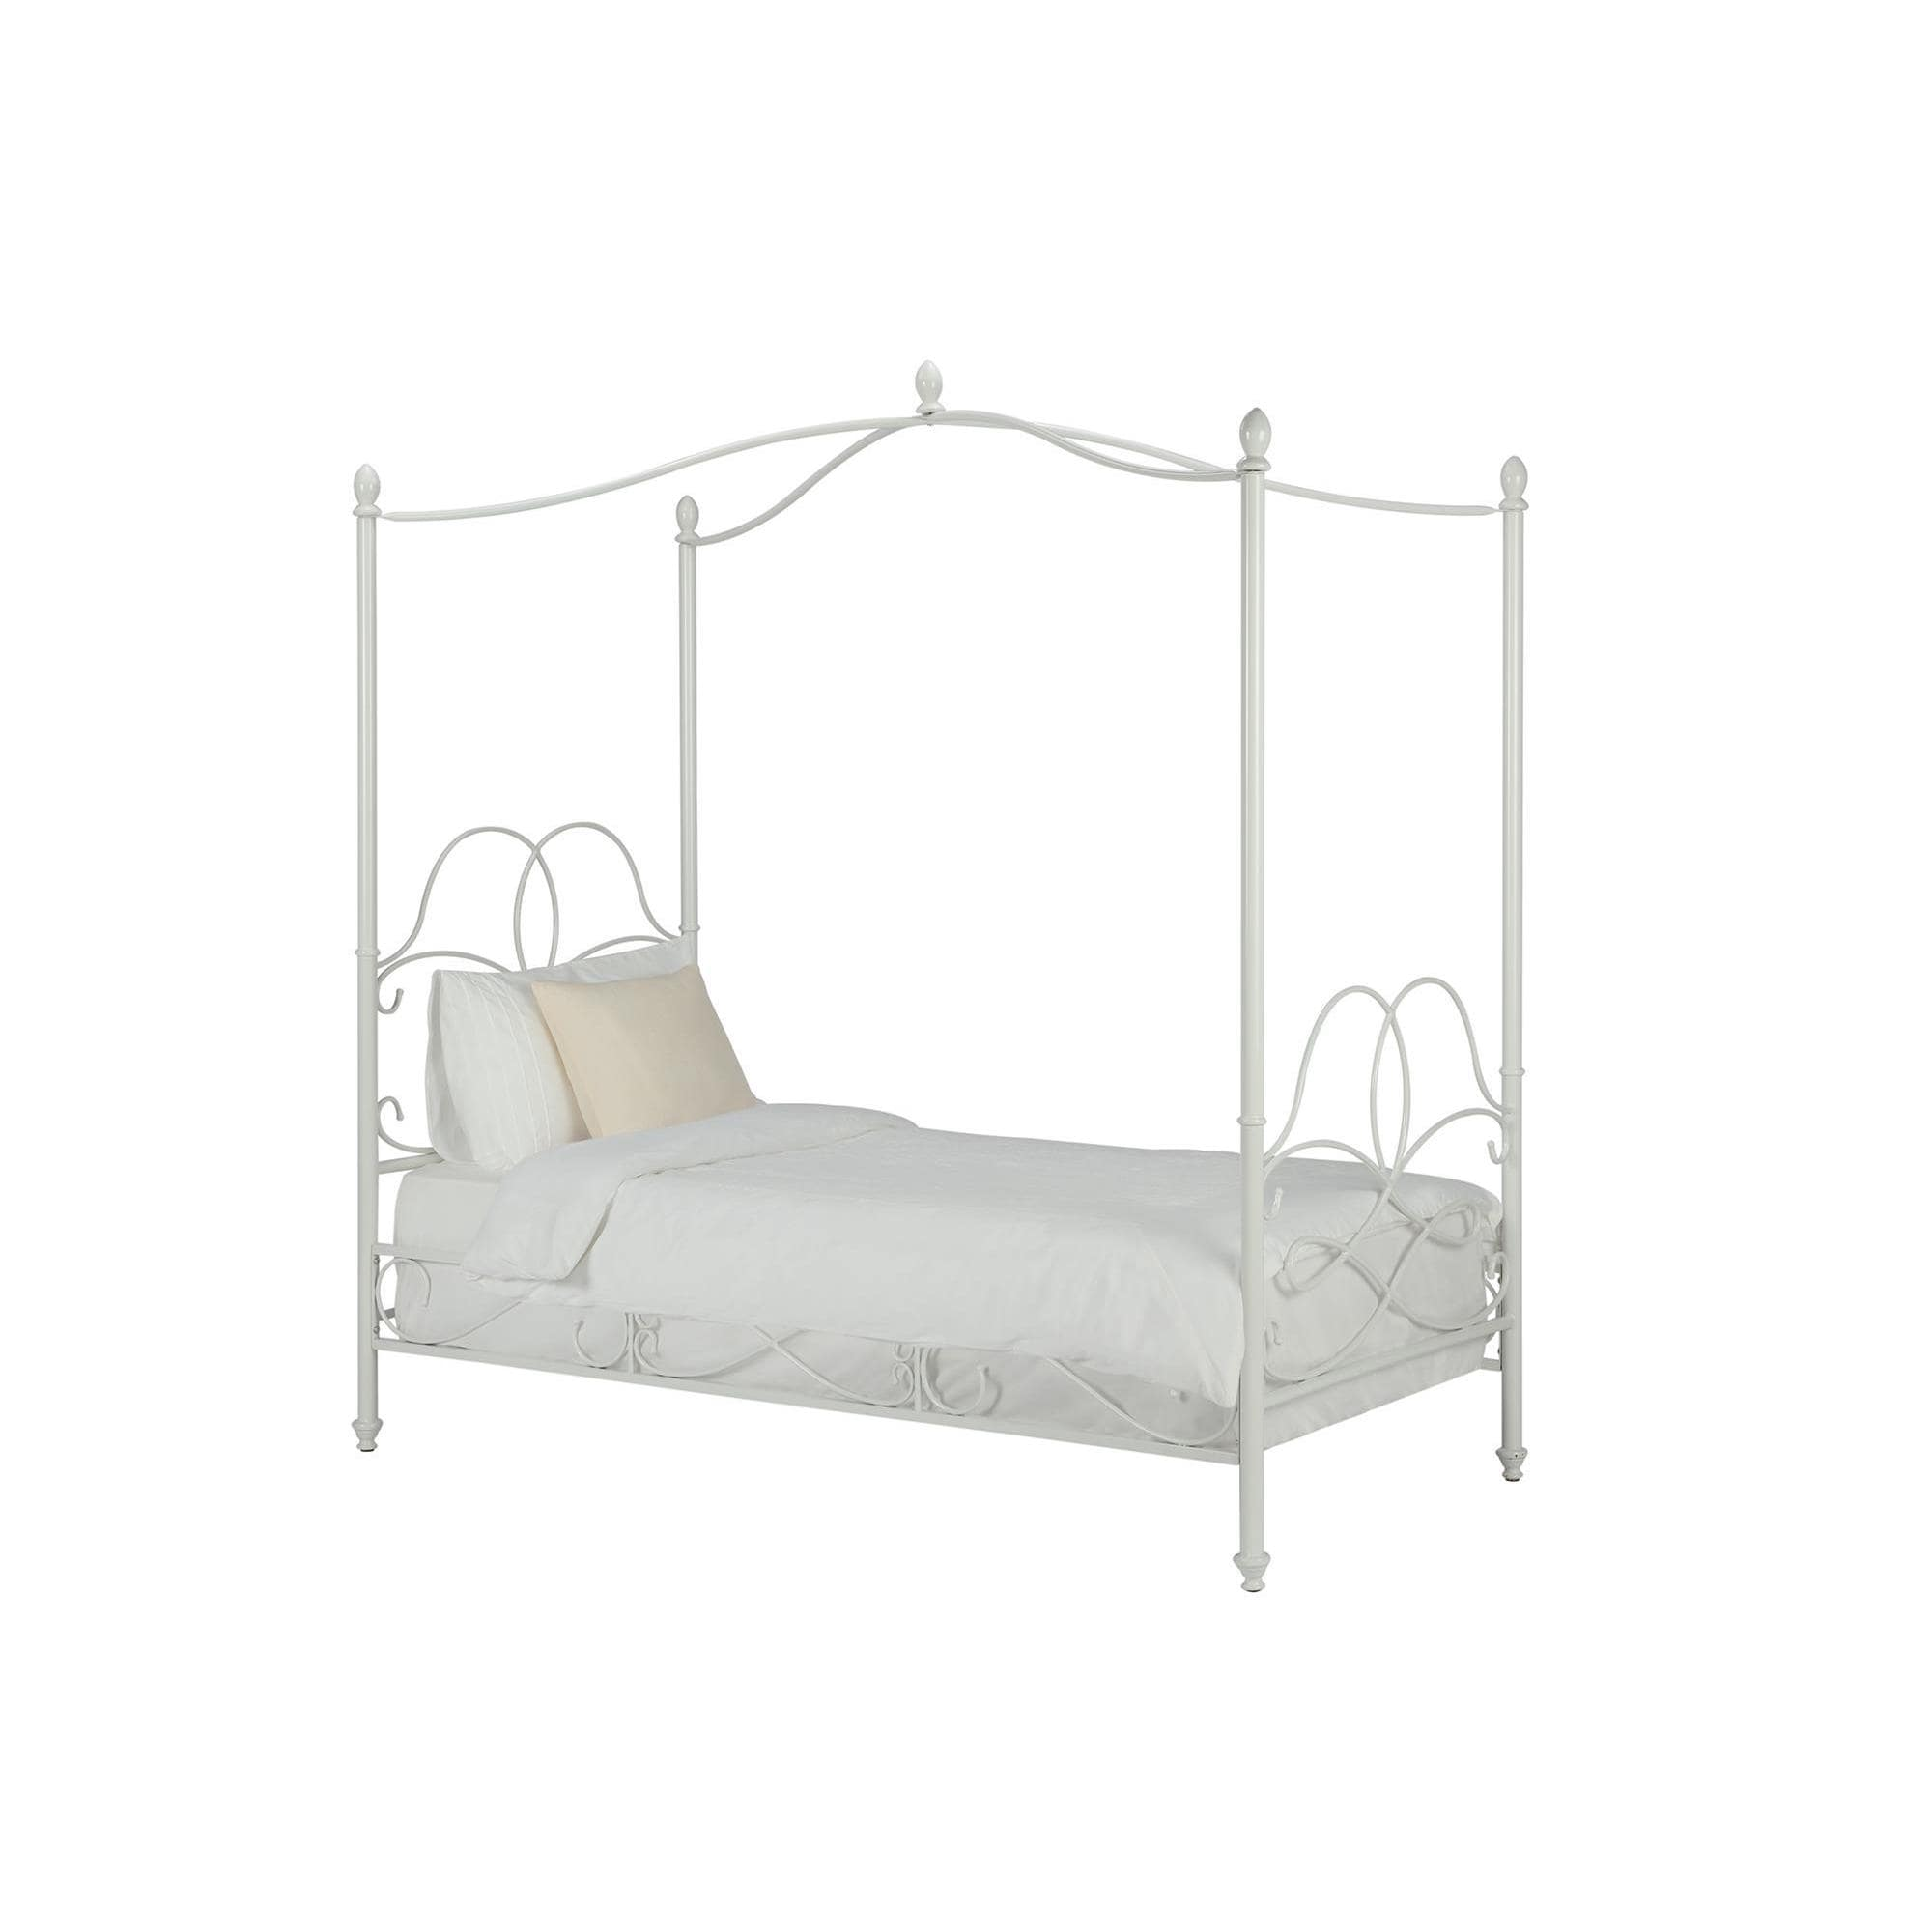 Shop DHP Fancy White Metal Canopy Twin Bed - Free Shipping Today ...